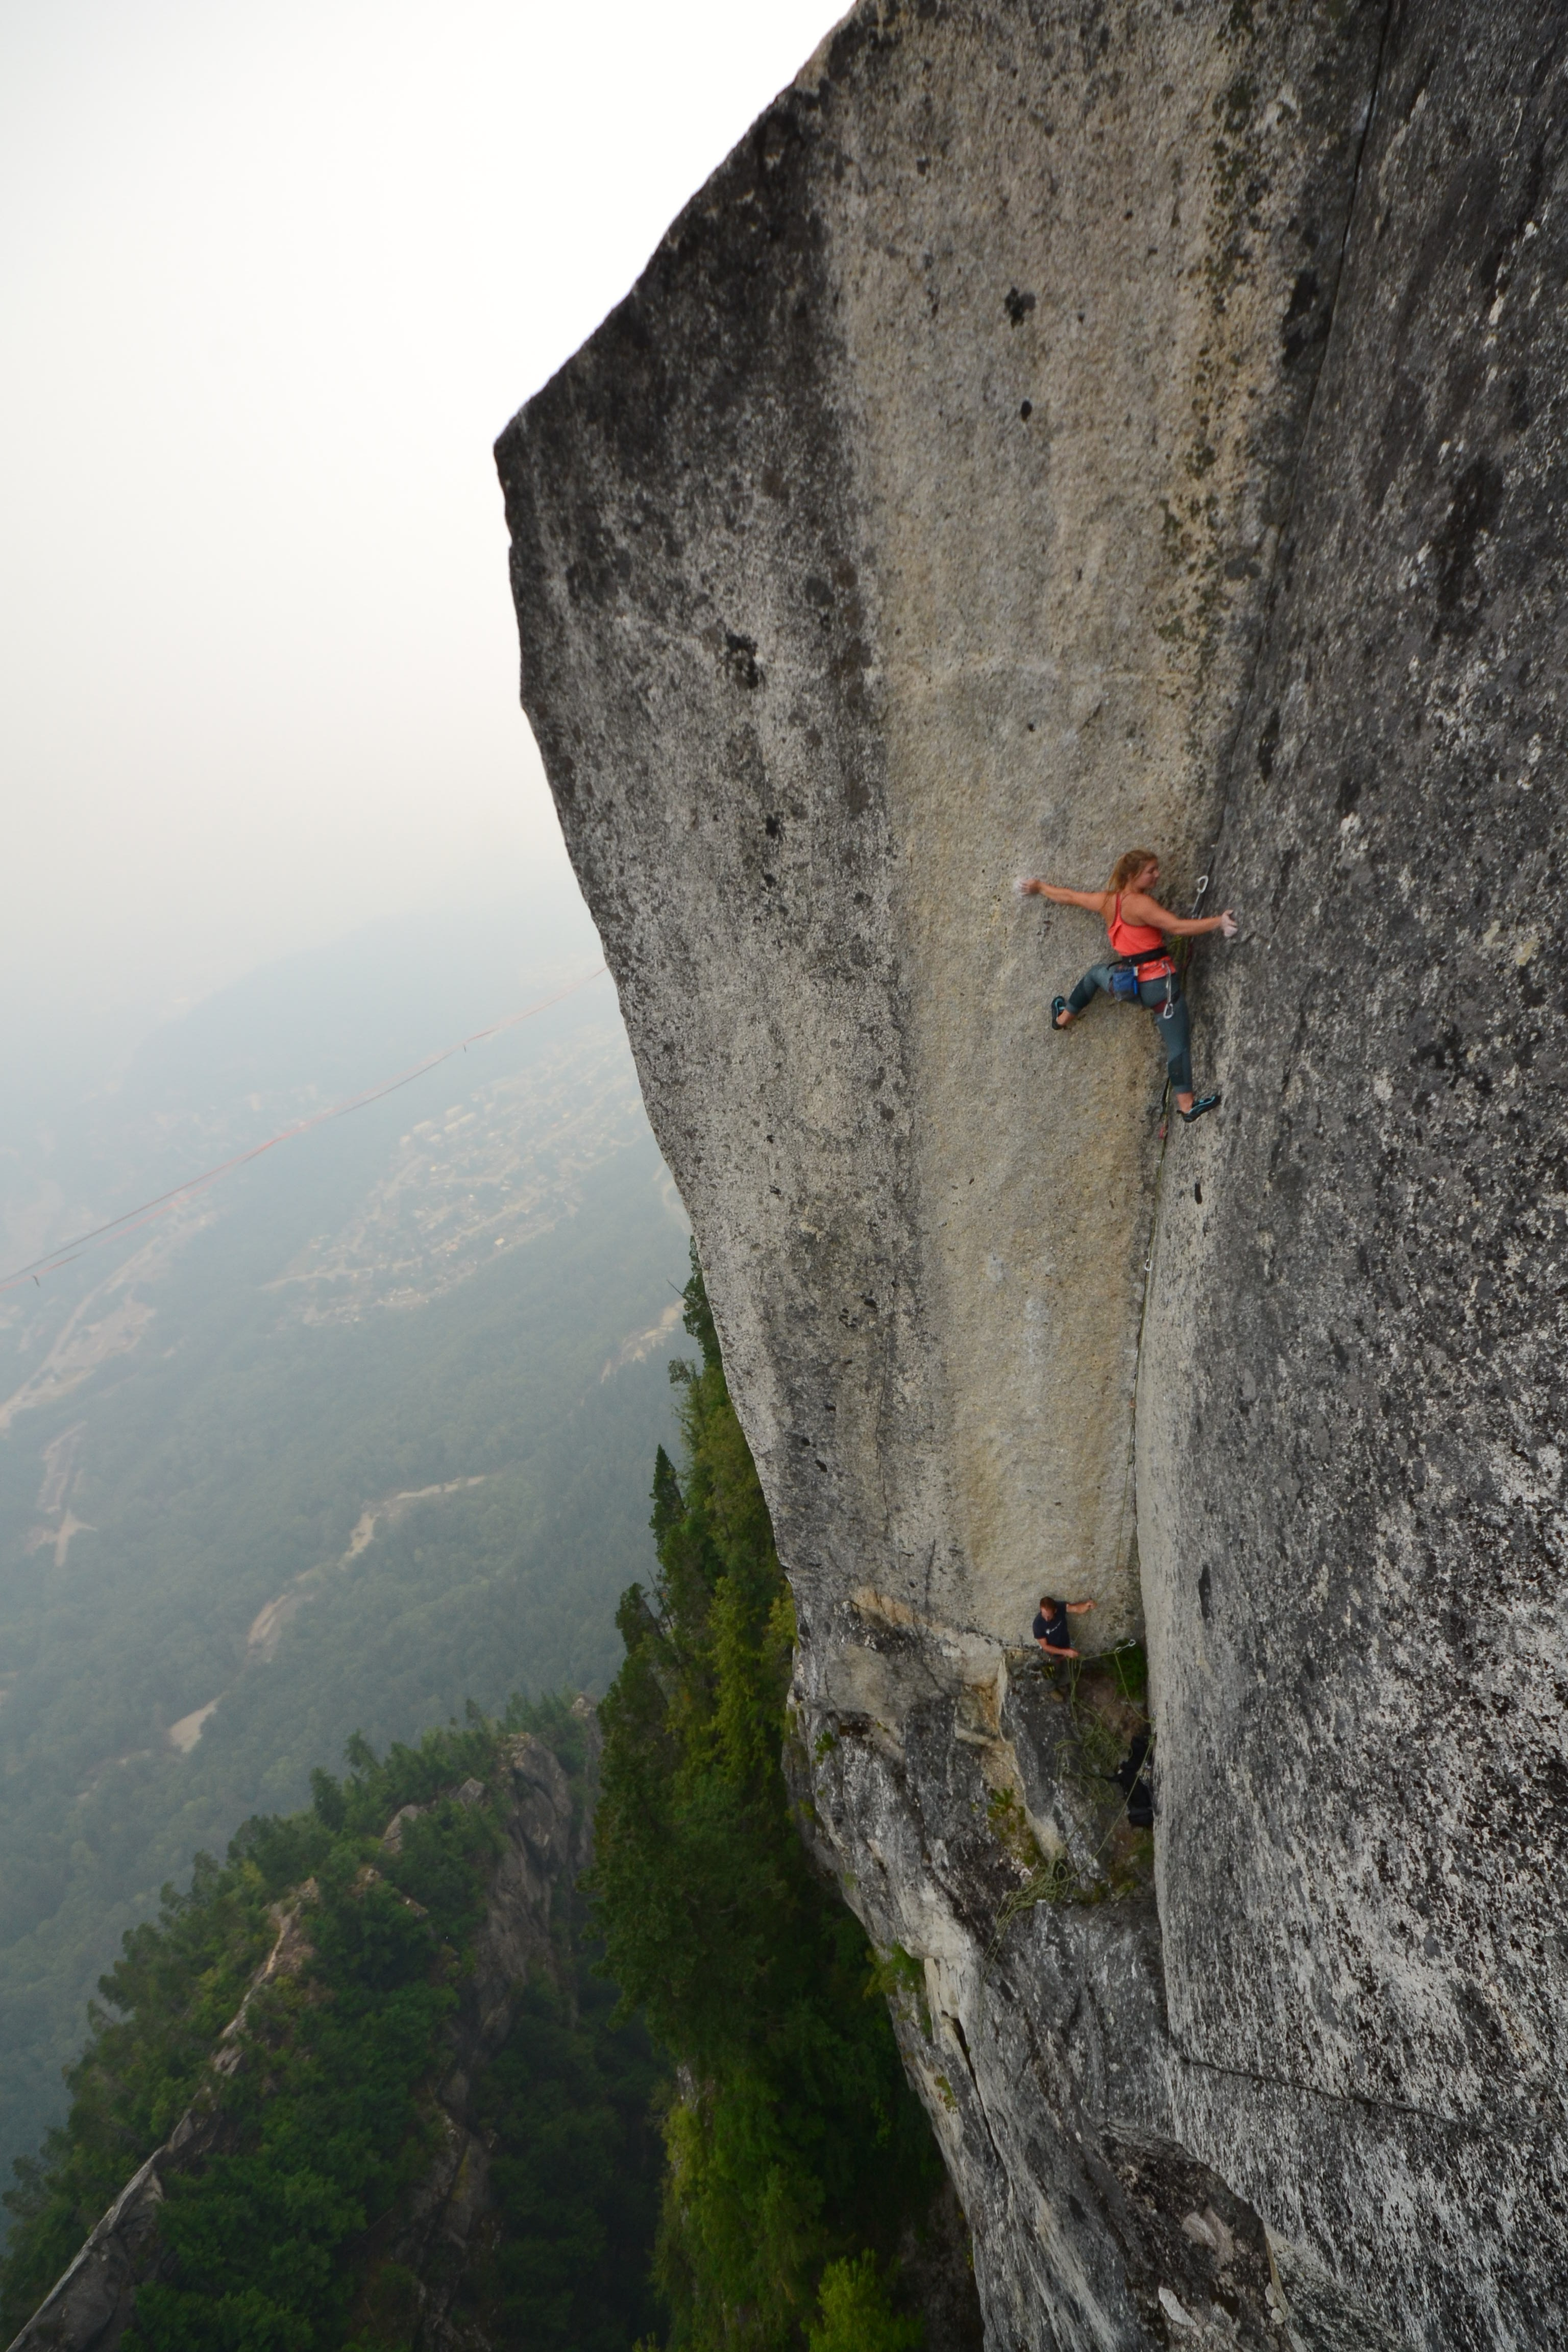 Hazel Findlay leads Tainted Love, aka Northern Soul (5.13d R), in Squamish, British Columbia [Photo] Jonny Baker